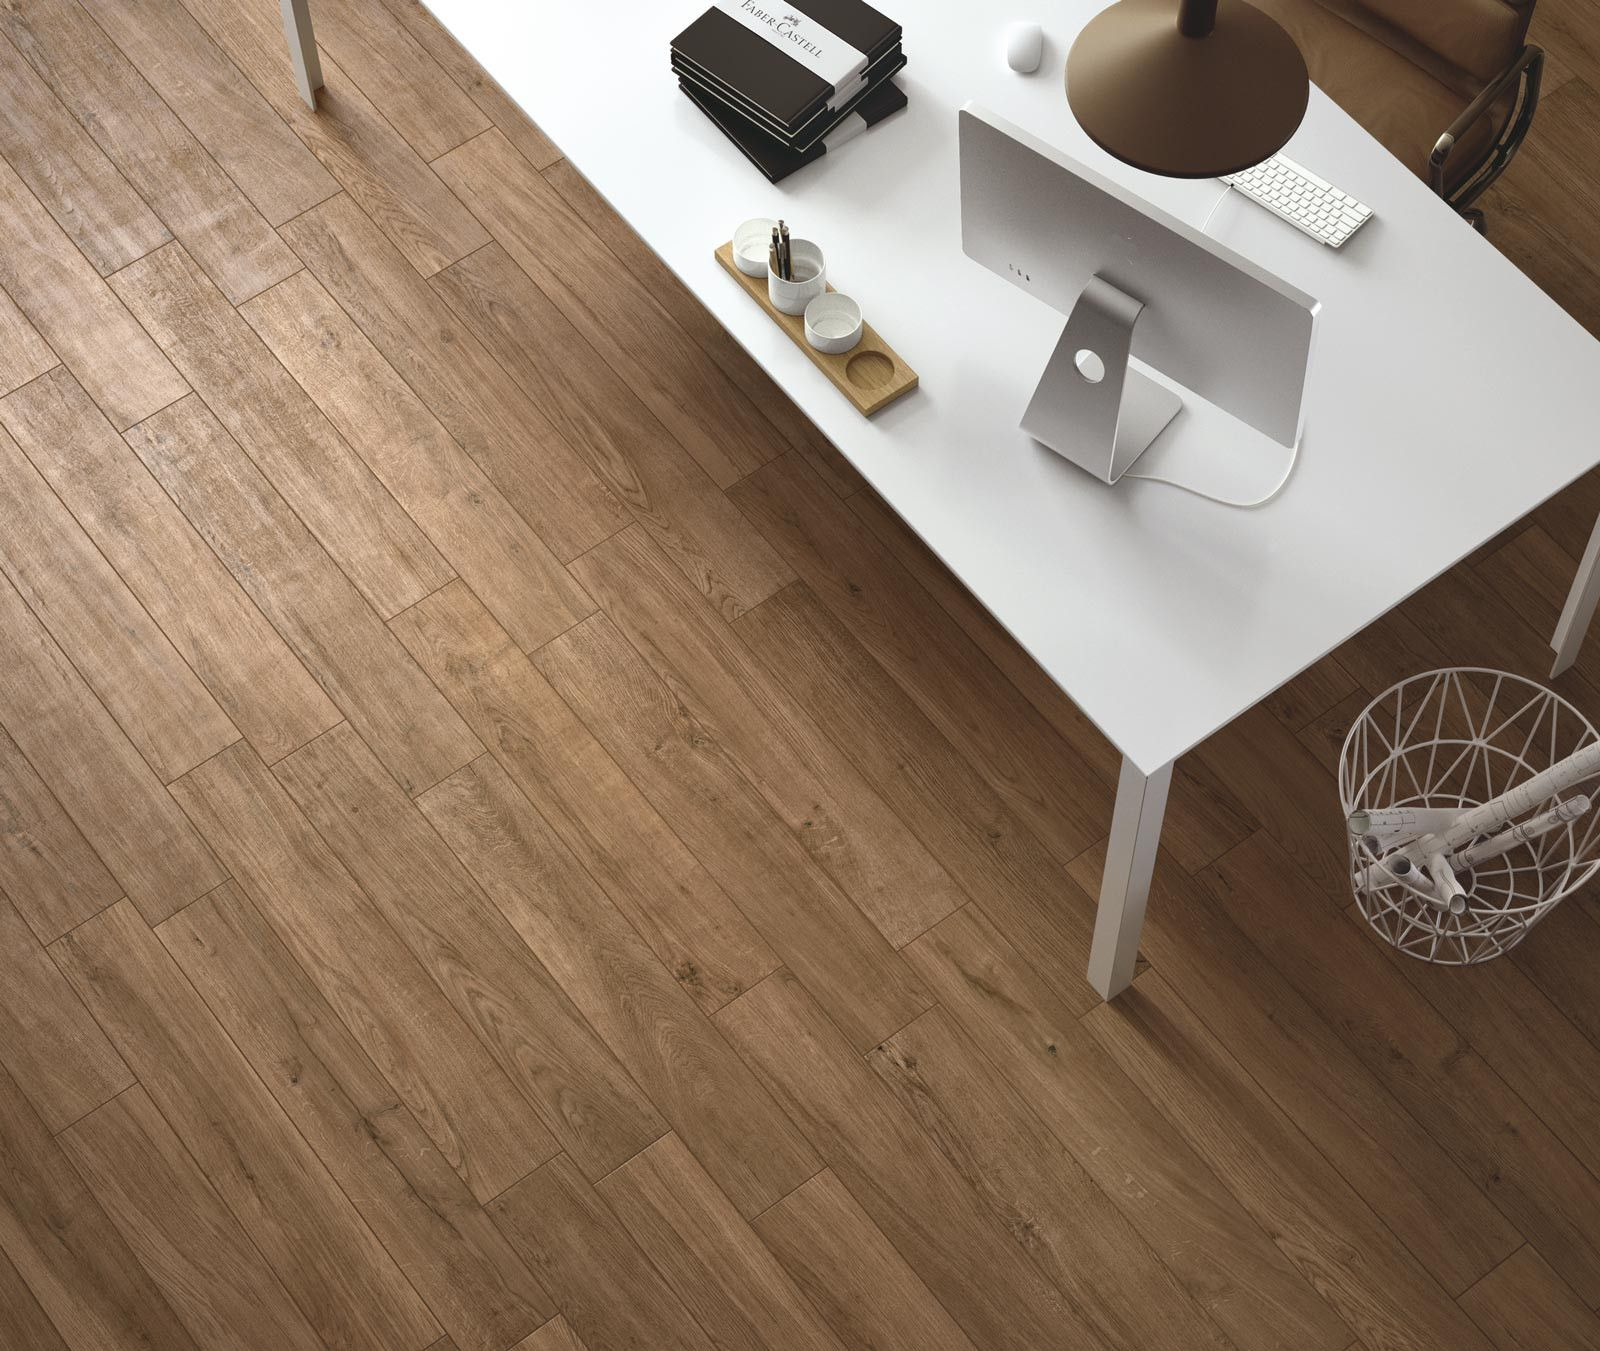 Ragno woodpassion brown 15x90 cm r44m feinsteinzeug holzoptik available on all the porcelain stoneware flooring by ragno woodpassion at the best price guaranteed discover ragno woodpassion brown cm wood effect dailygadgetfo Choice Image